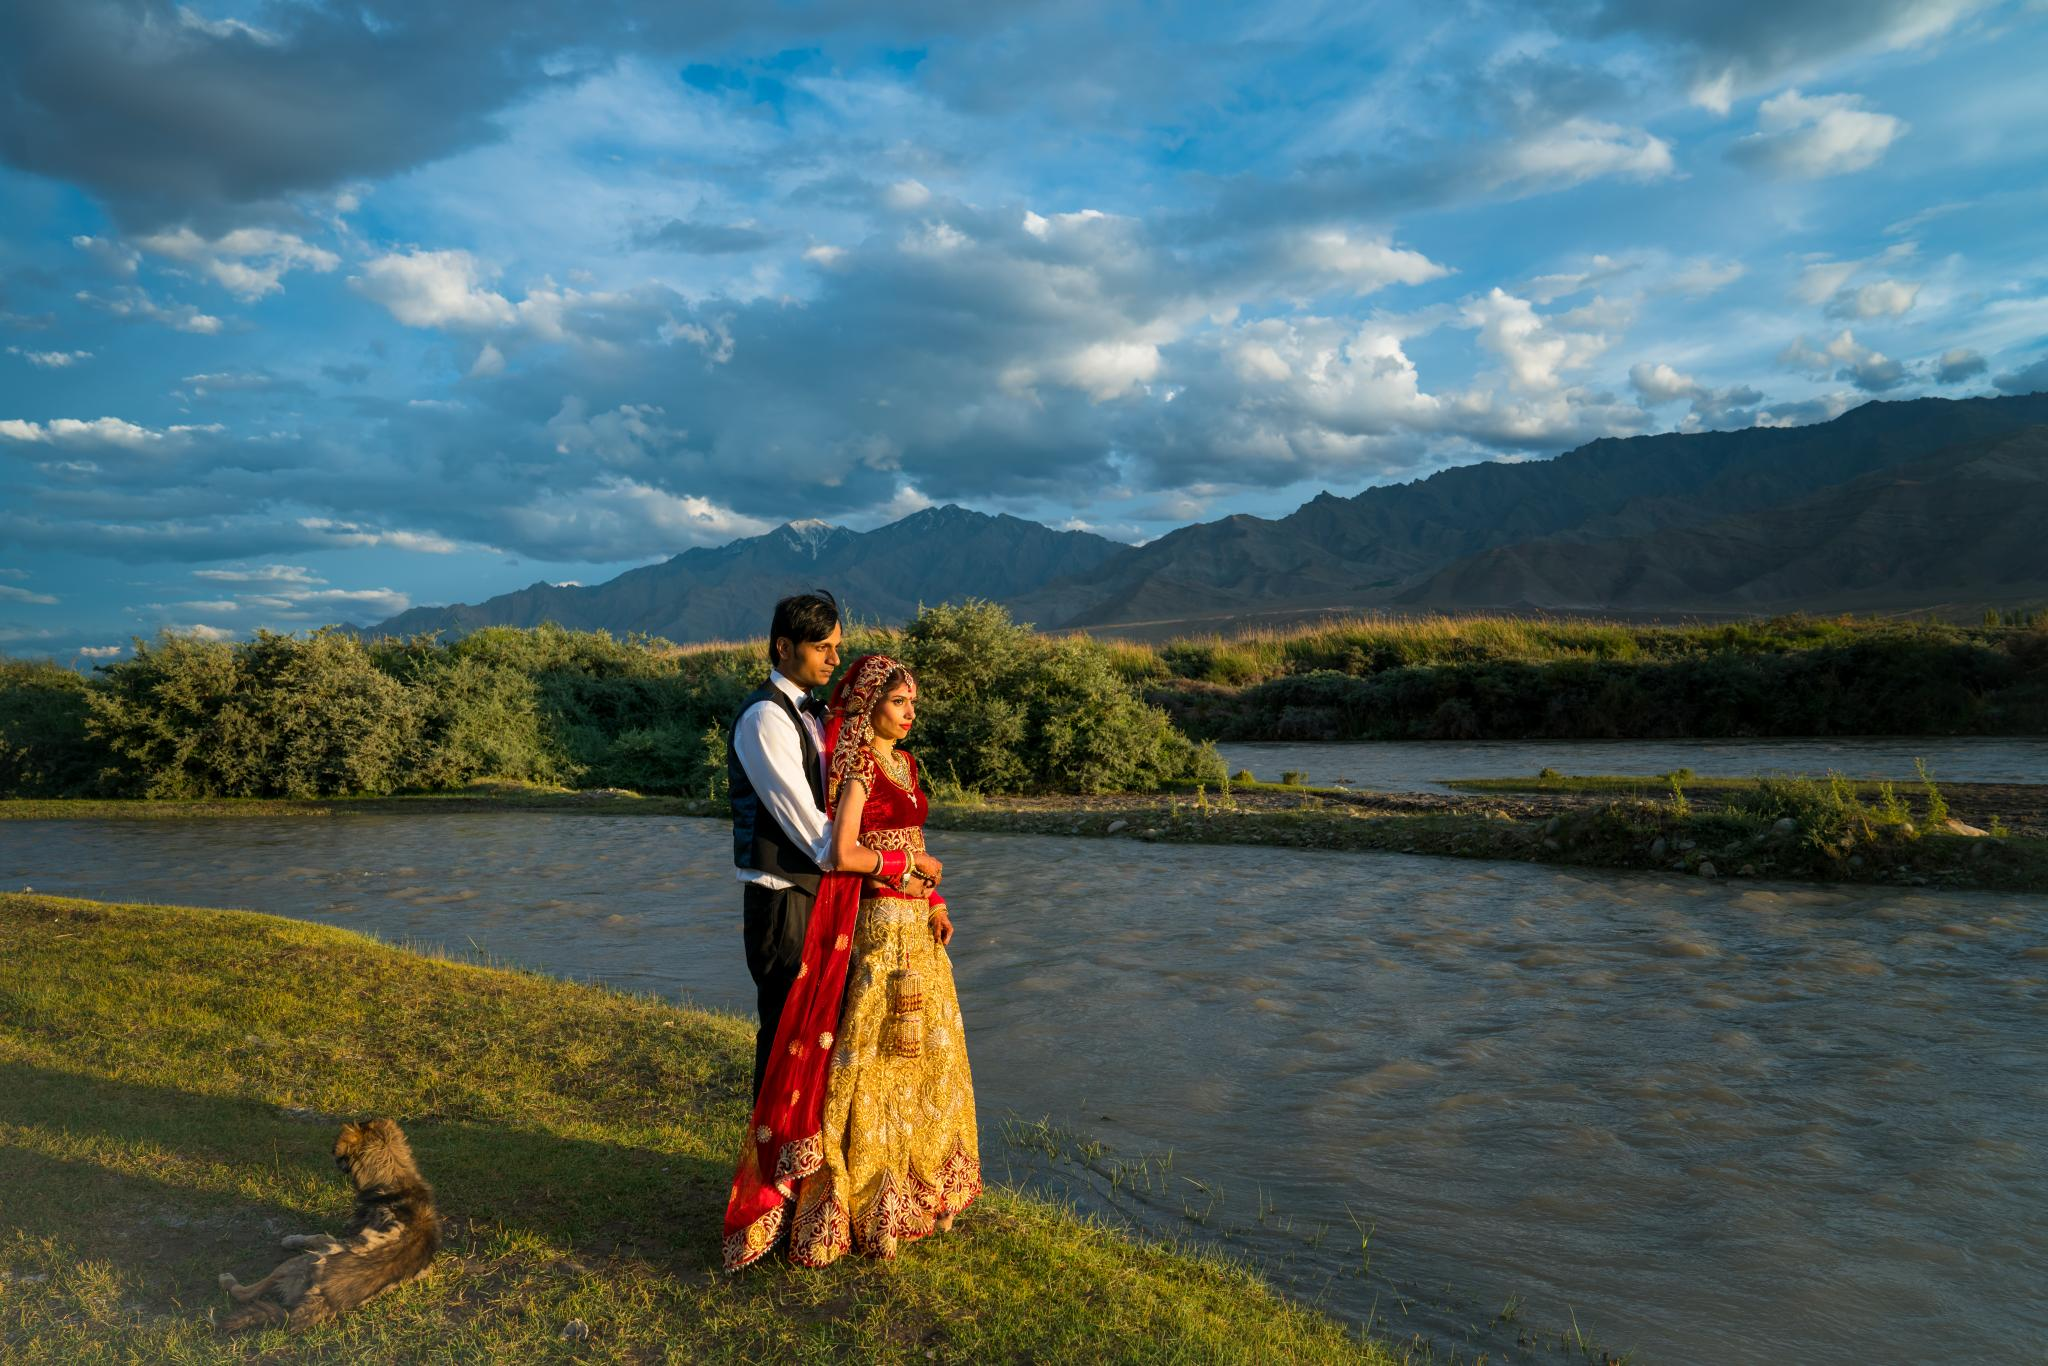 How to fit wedding photography in your budget without hurting quality?